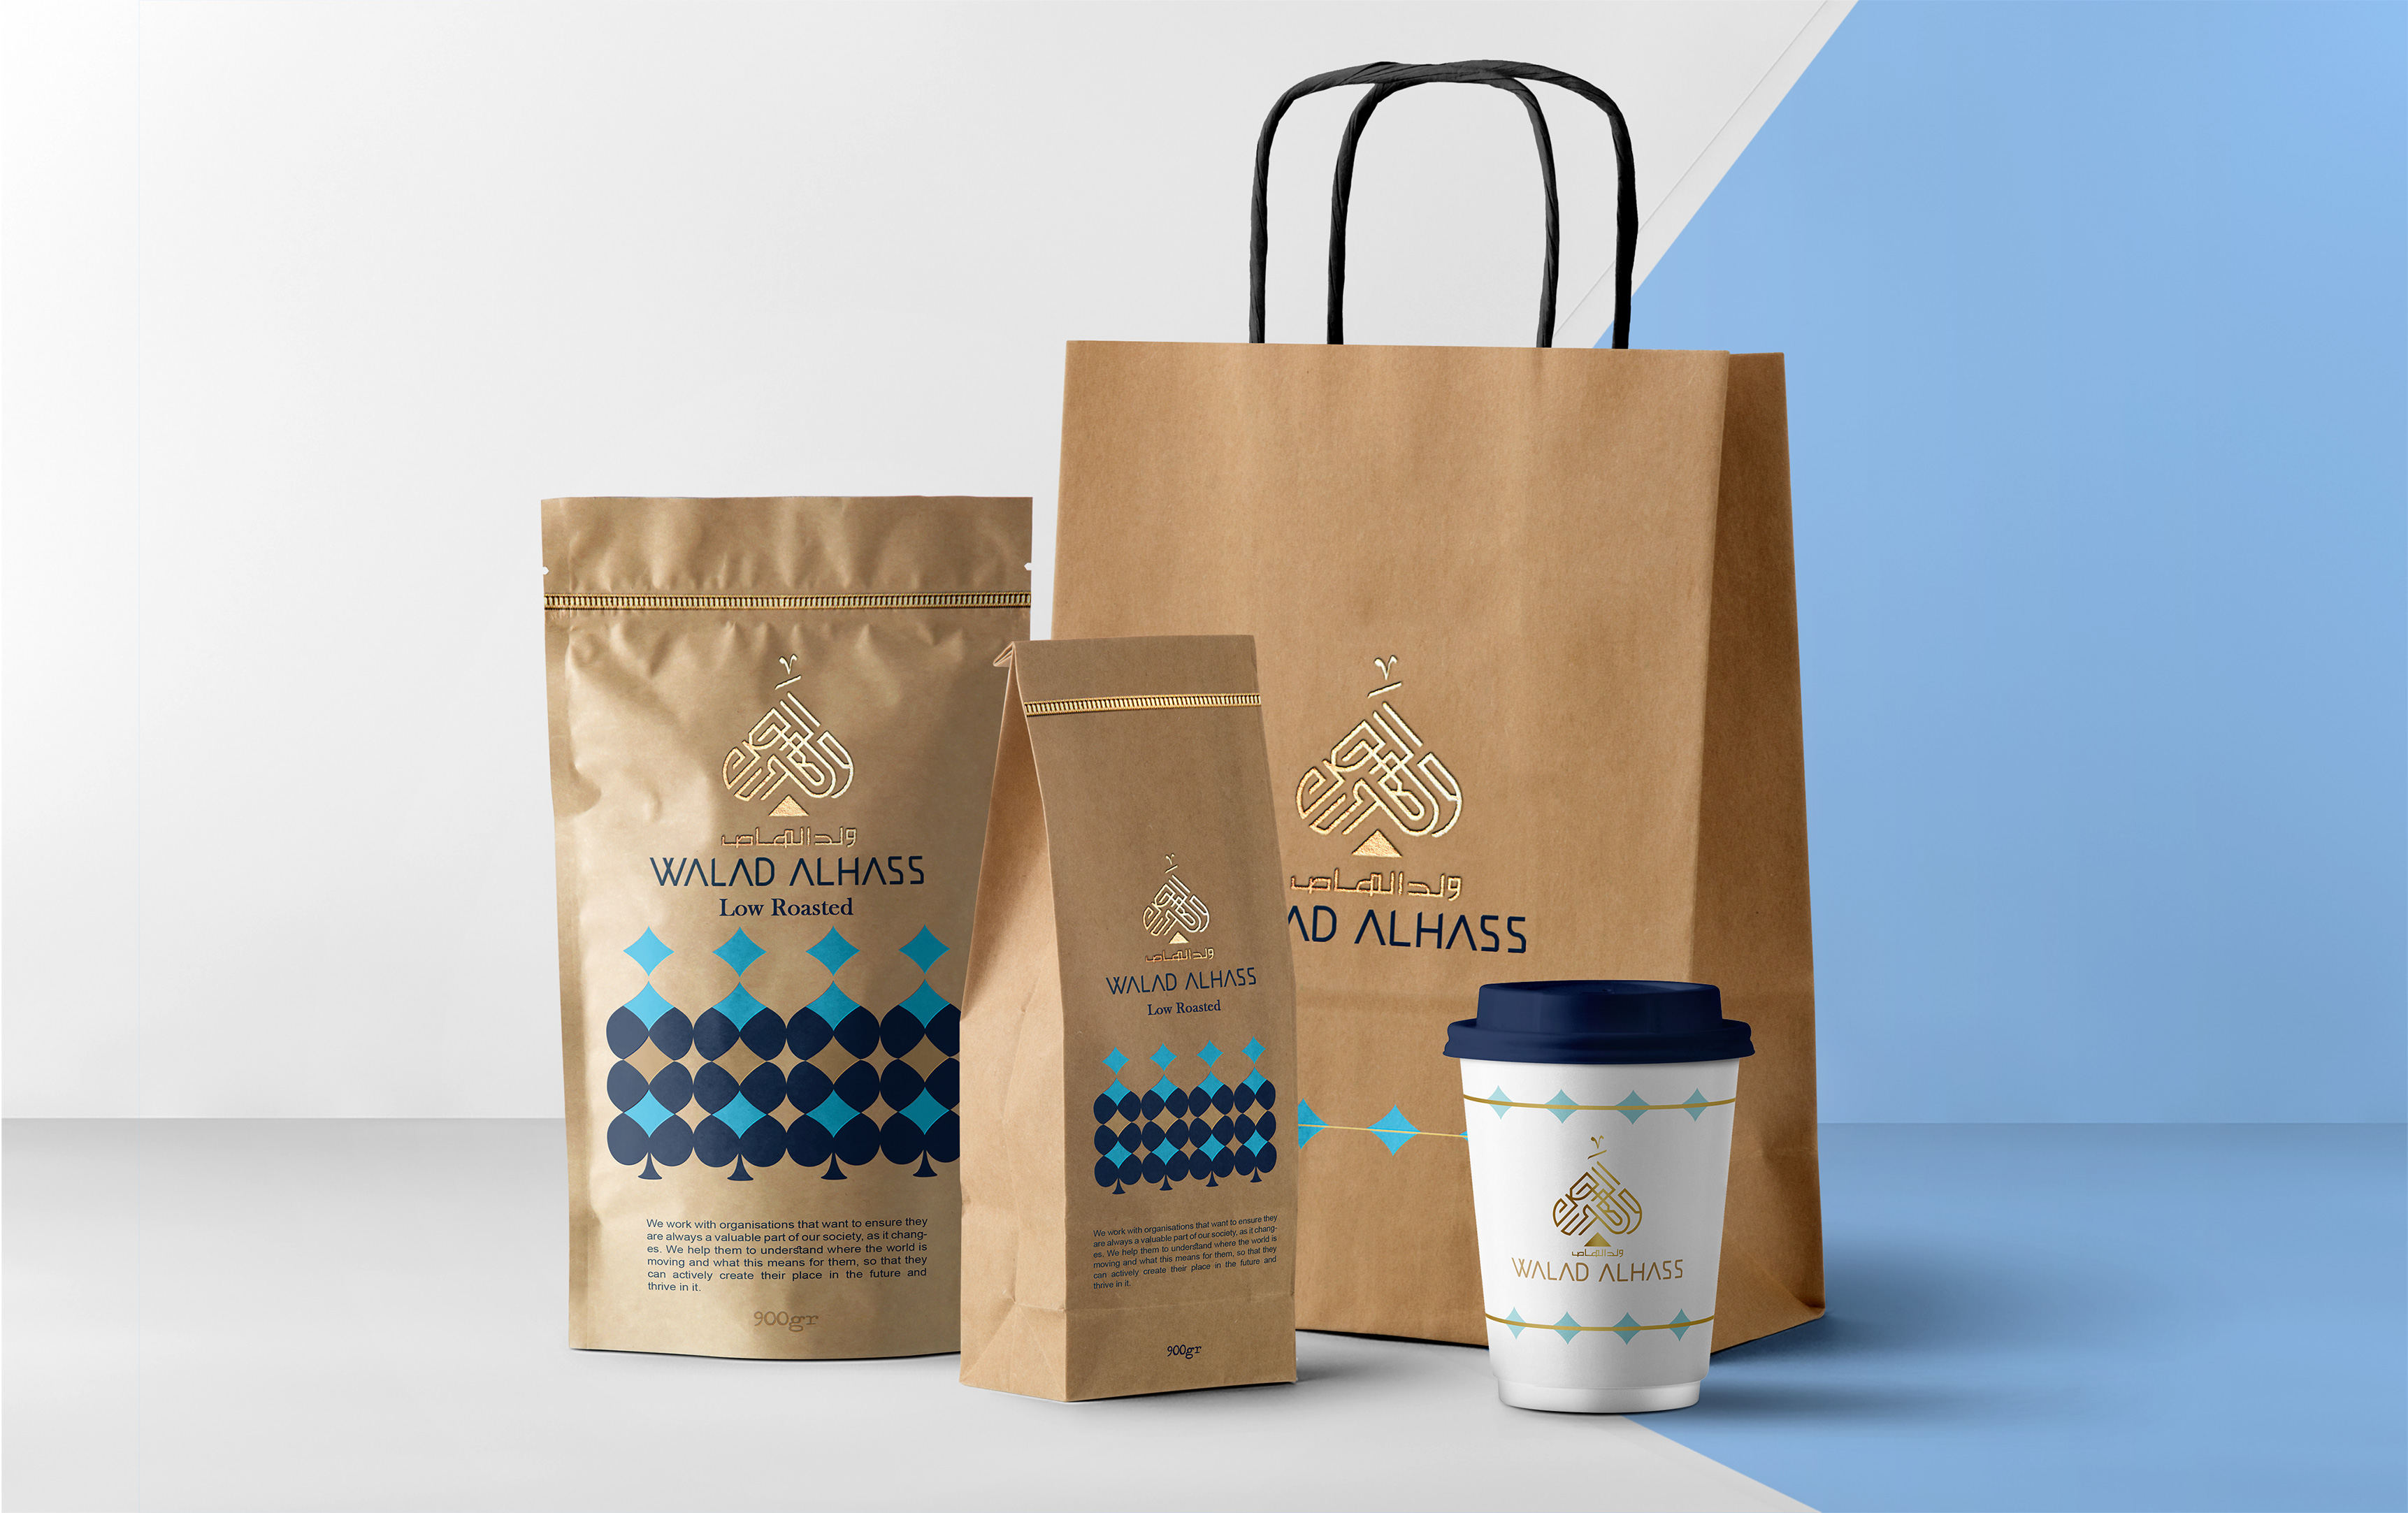 Taha Fakouri Design Creates Packaging Design for New Coffee Brand Walad Alhass